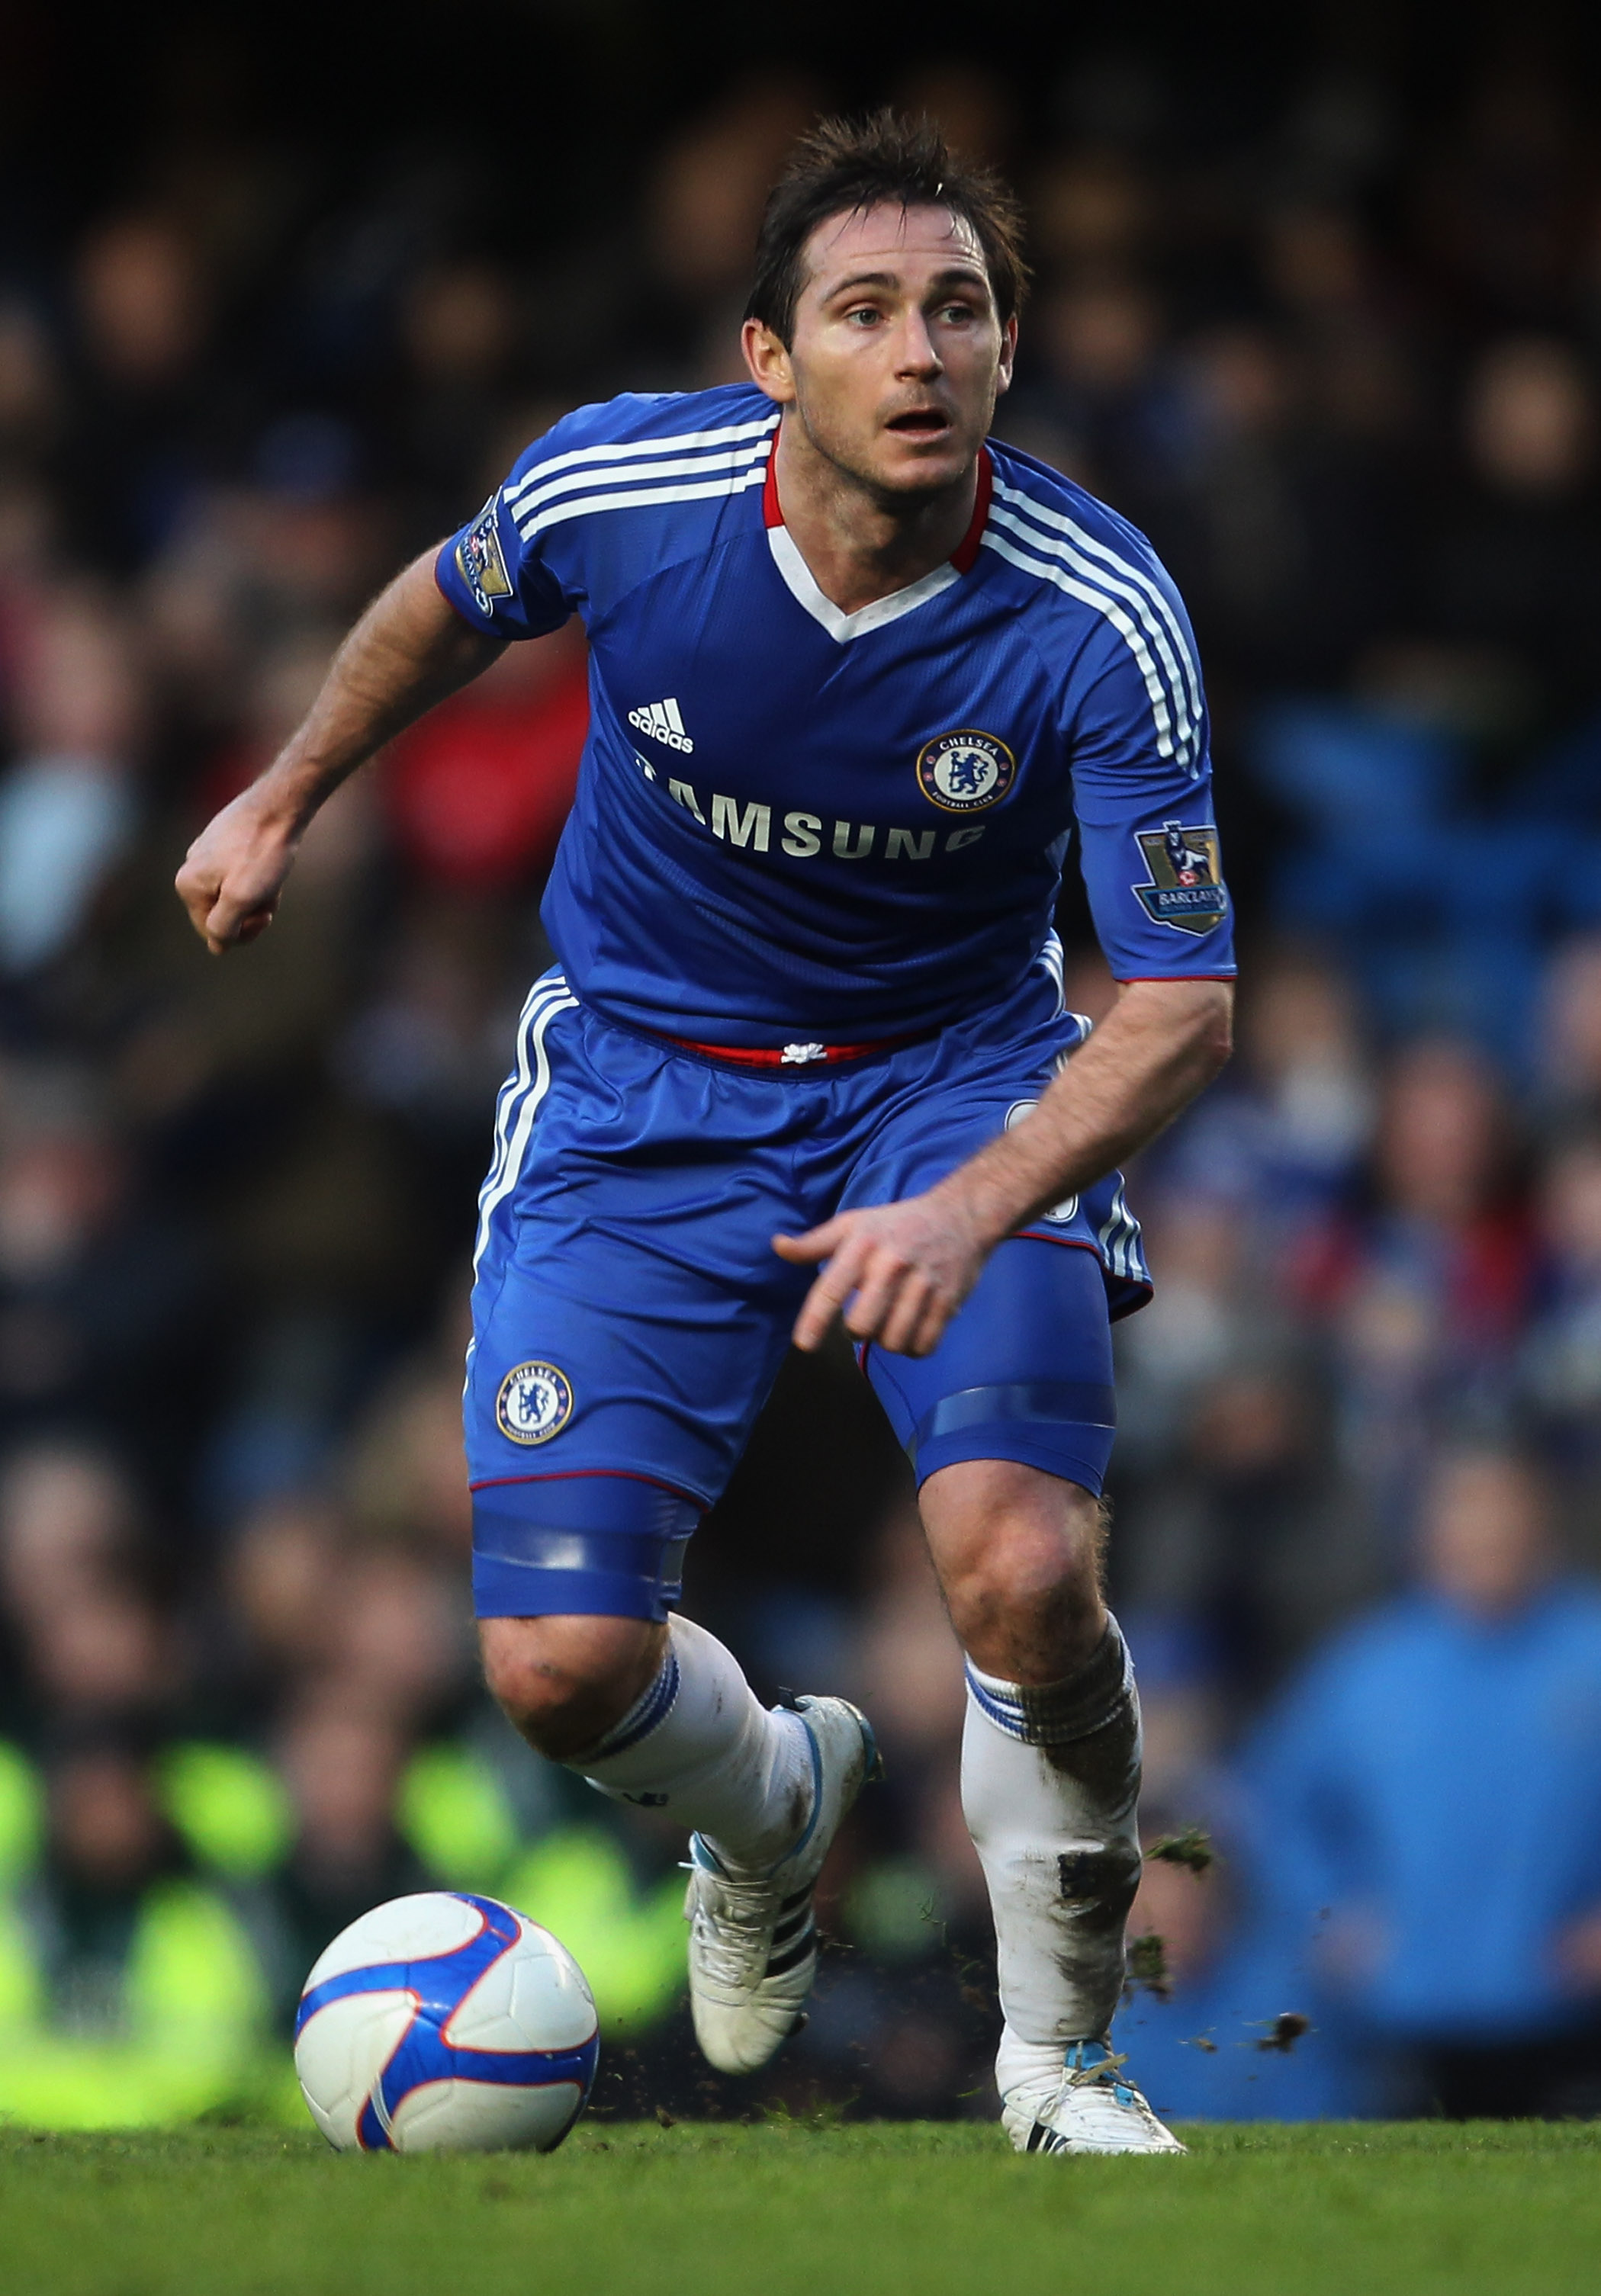 LONDON, ENGLAND - JANUARY 09:  Frank Lampard of Chelsea in action during the FA Cup sponsored by E.ON 3rd round match between Chelsea and Ipswich Town at Stamford Bridge on January 9, 2011 in London, England.  (Photo by Scott Heavey/Getty Images)